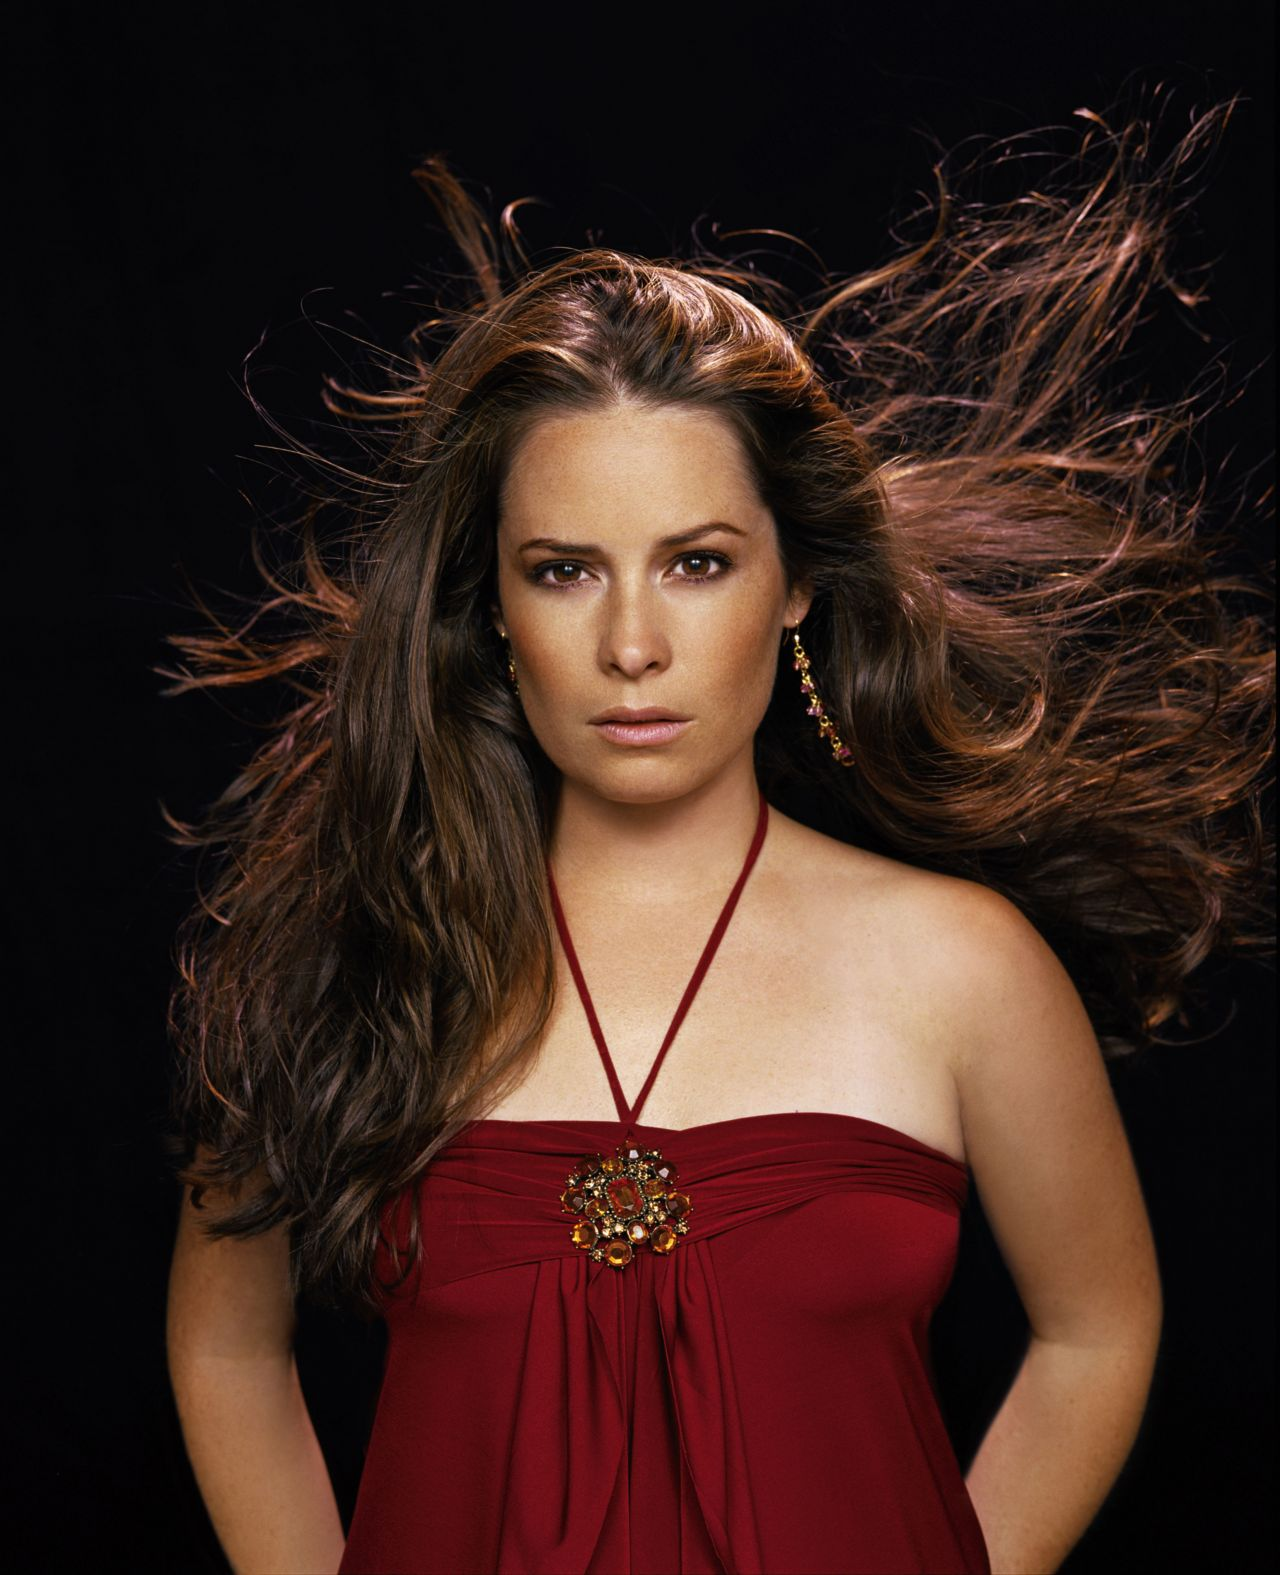 Marie combs holly